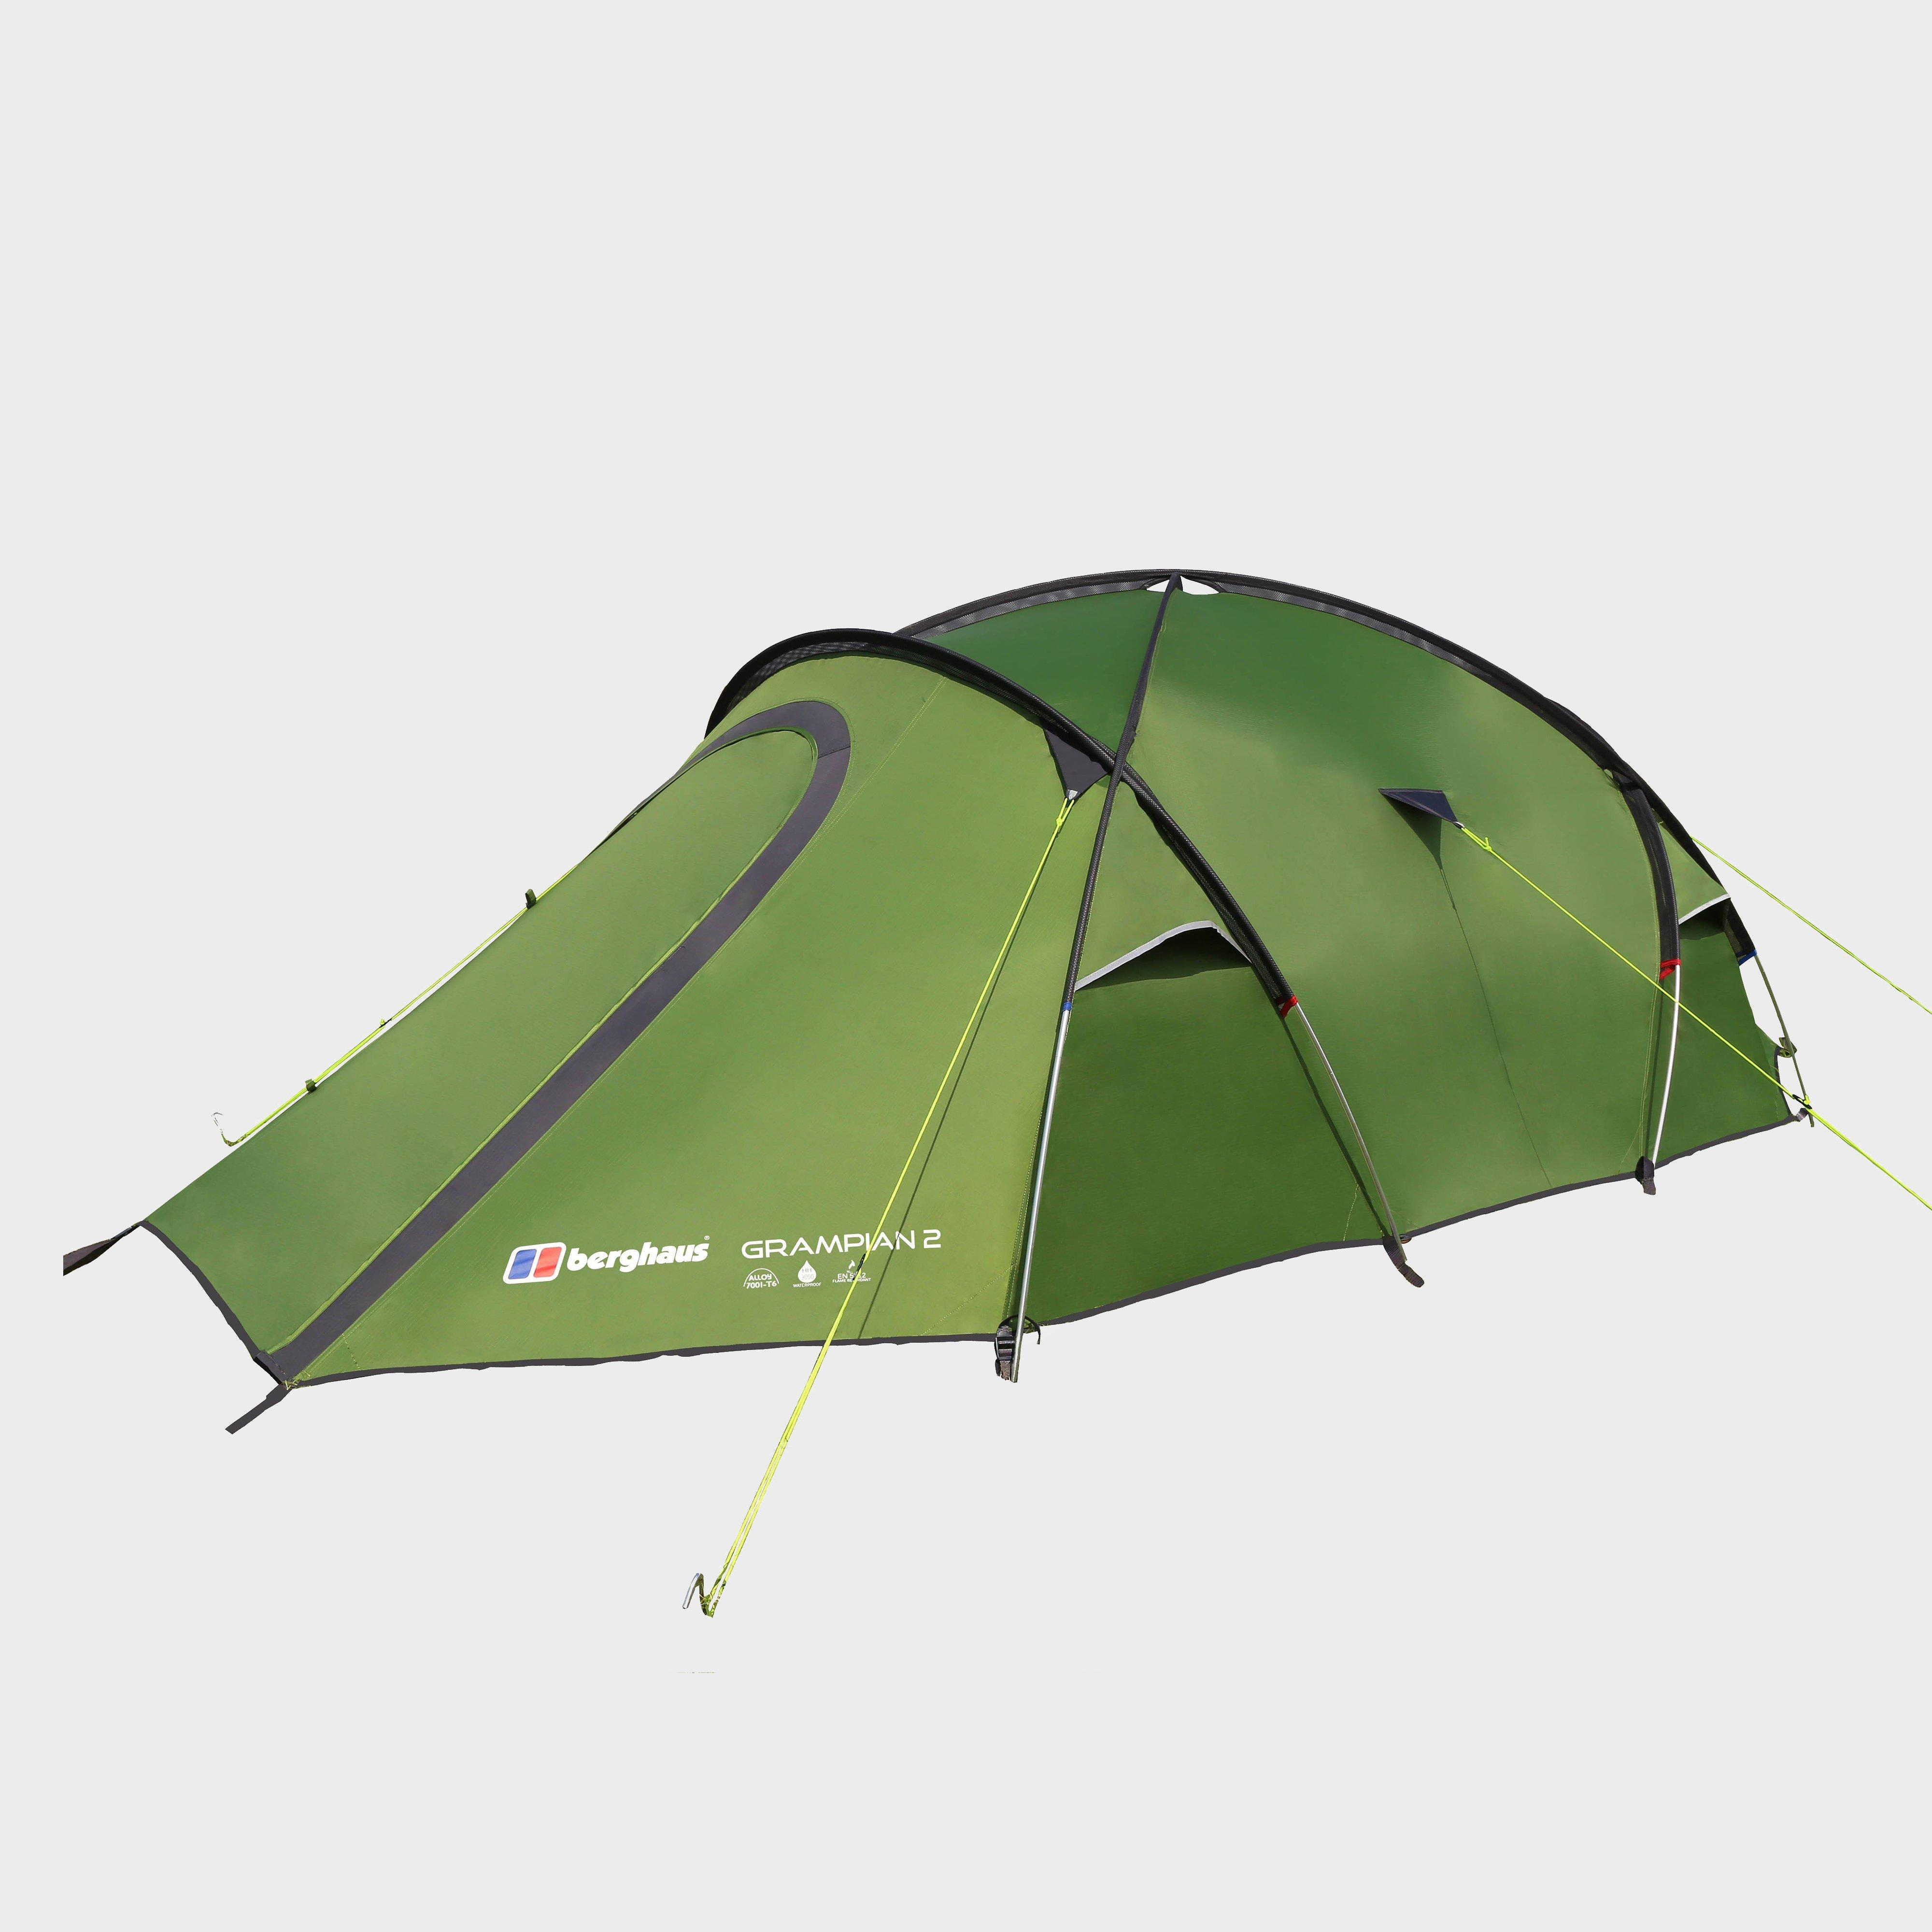 Gr&ian 2 Man Tent  sc 1 st  Millets & Backpacking Tents | Lightweight 1 u0026 2 Man Tents | Millets